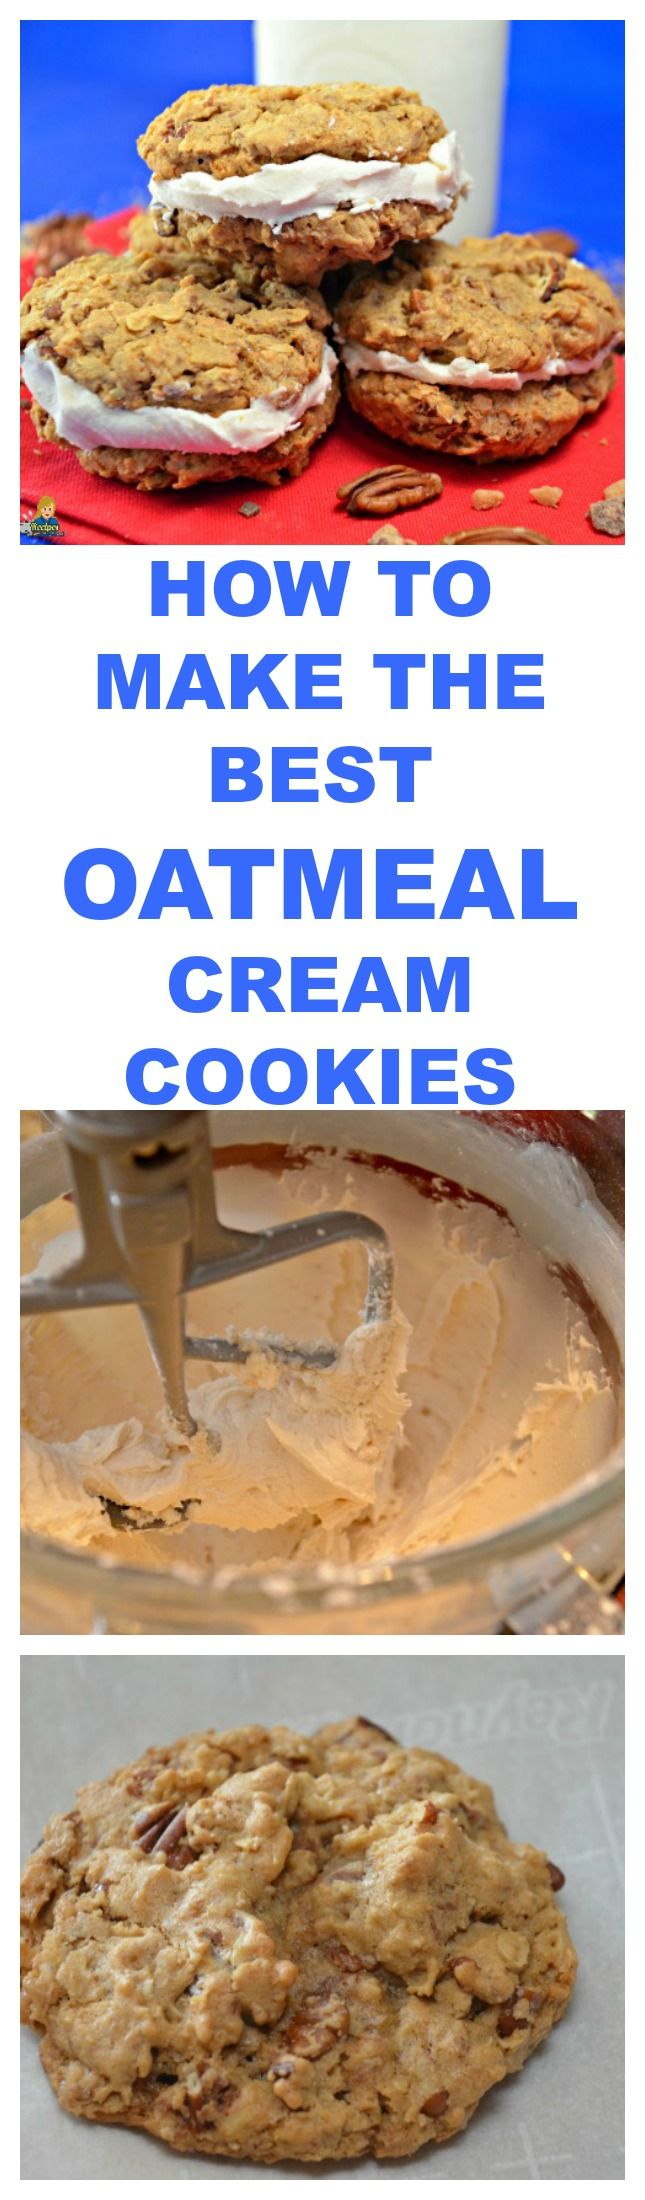 HOW TO MAKE THE BEST OATMEAL CREAM COOKIES http://princesspinkygirl.com/oatmeal-cream-cookies/